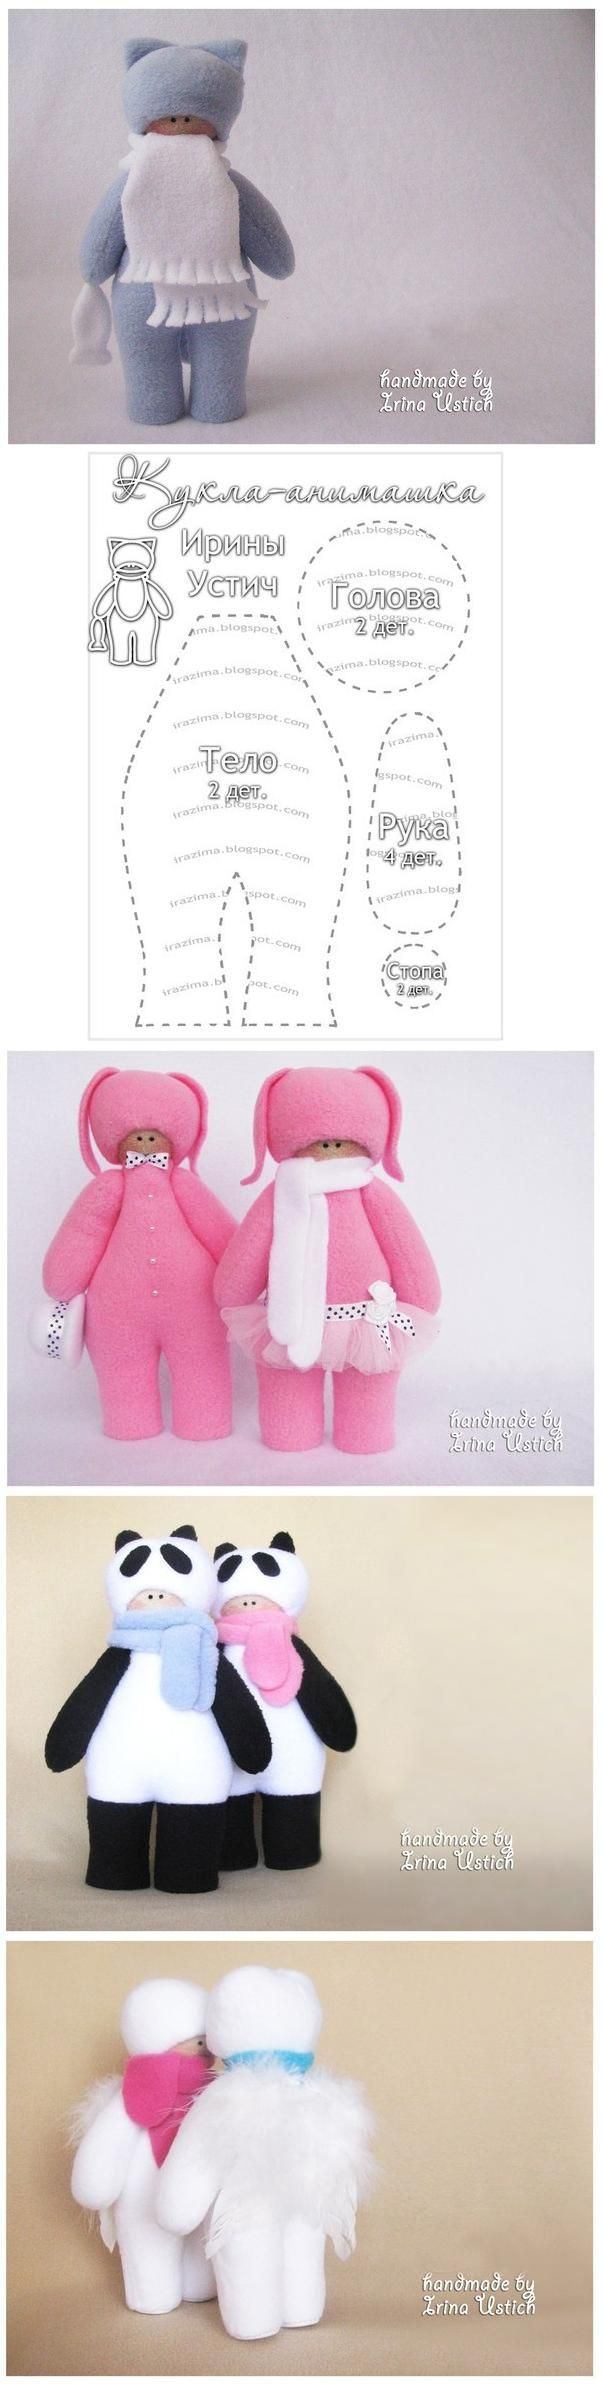 DIY Fabric Little Doll